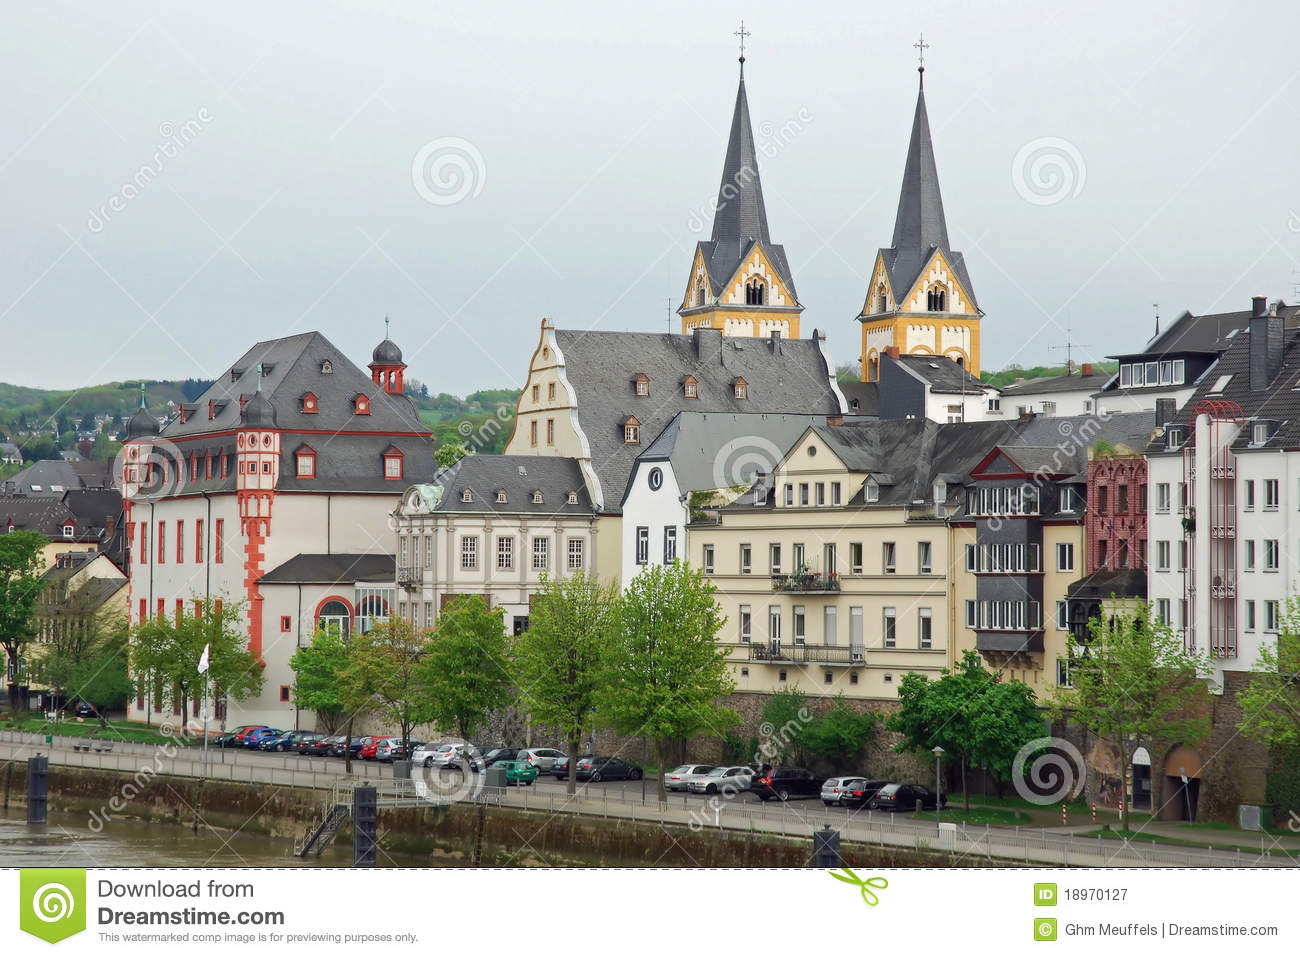 Coblenz, Cityscape from river Moselle, Germany